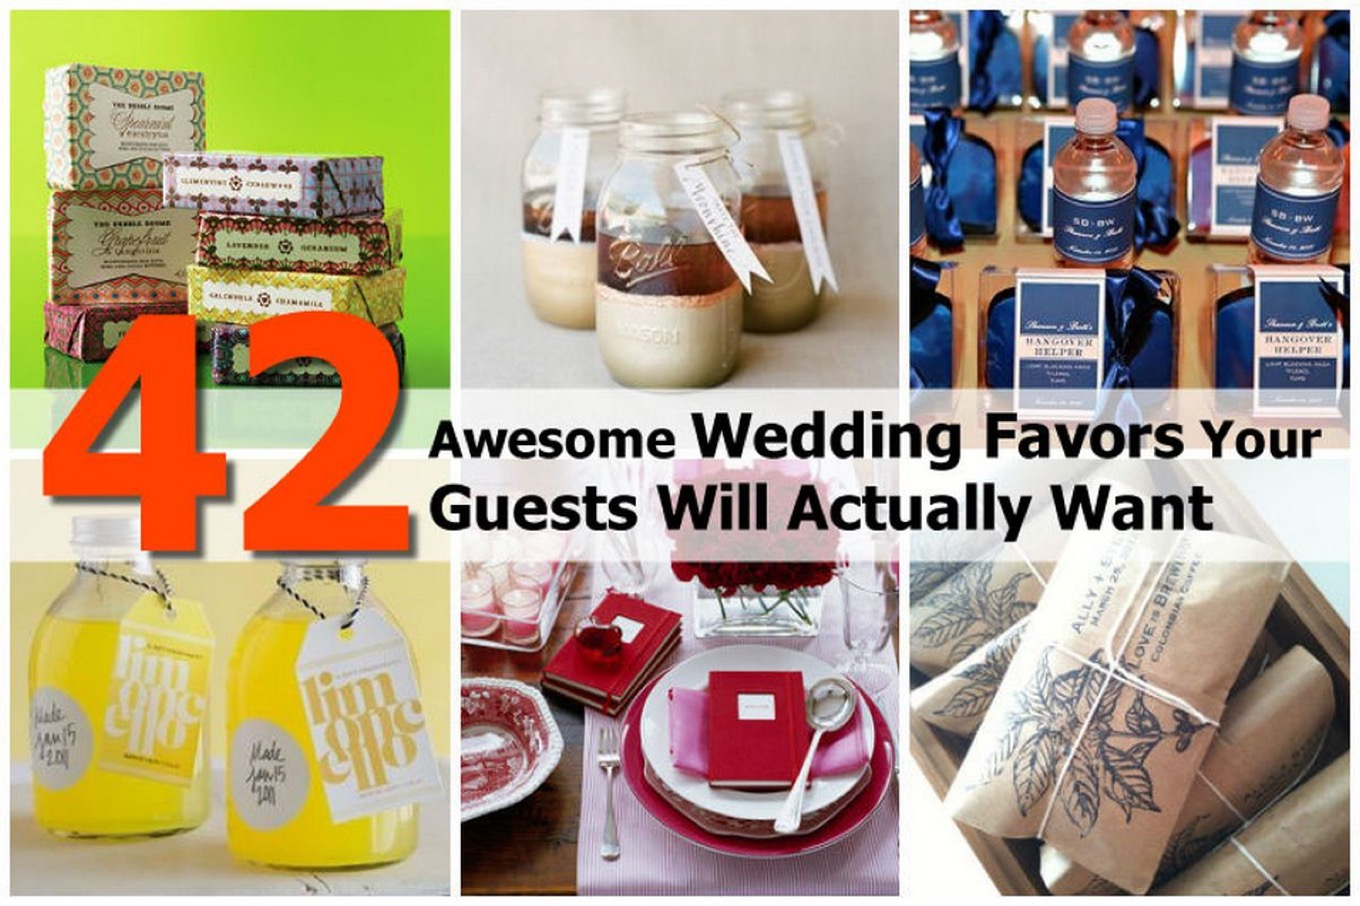 Gift For Guests At Wedding: 42 Awesome Wedding Favors Your Guests Will Actually Want